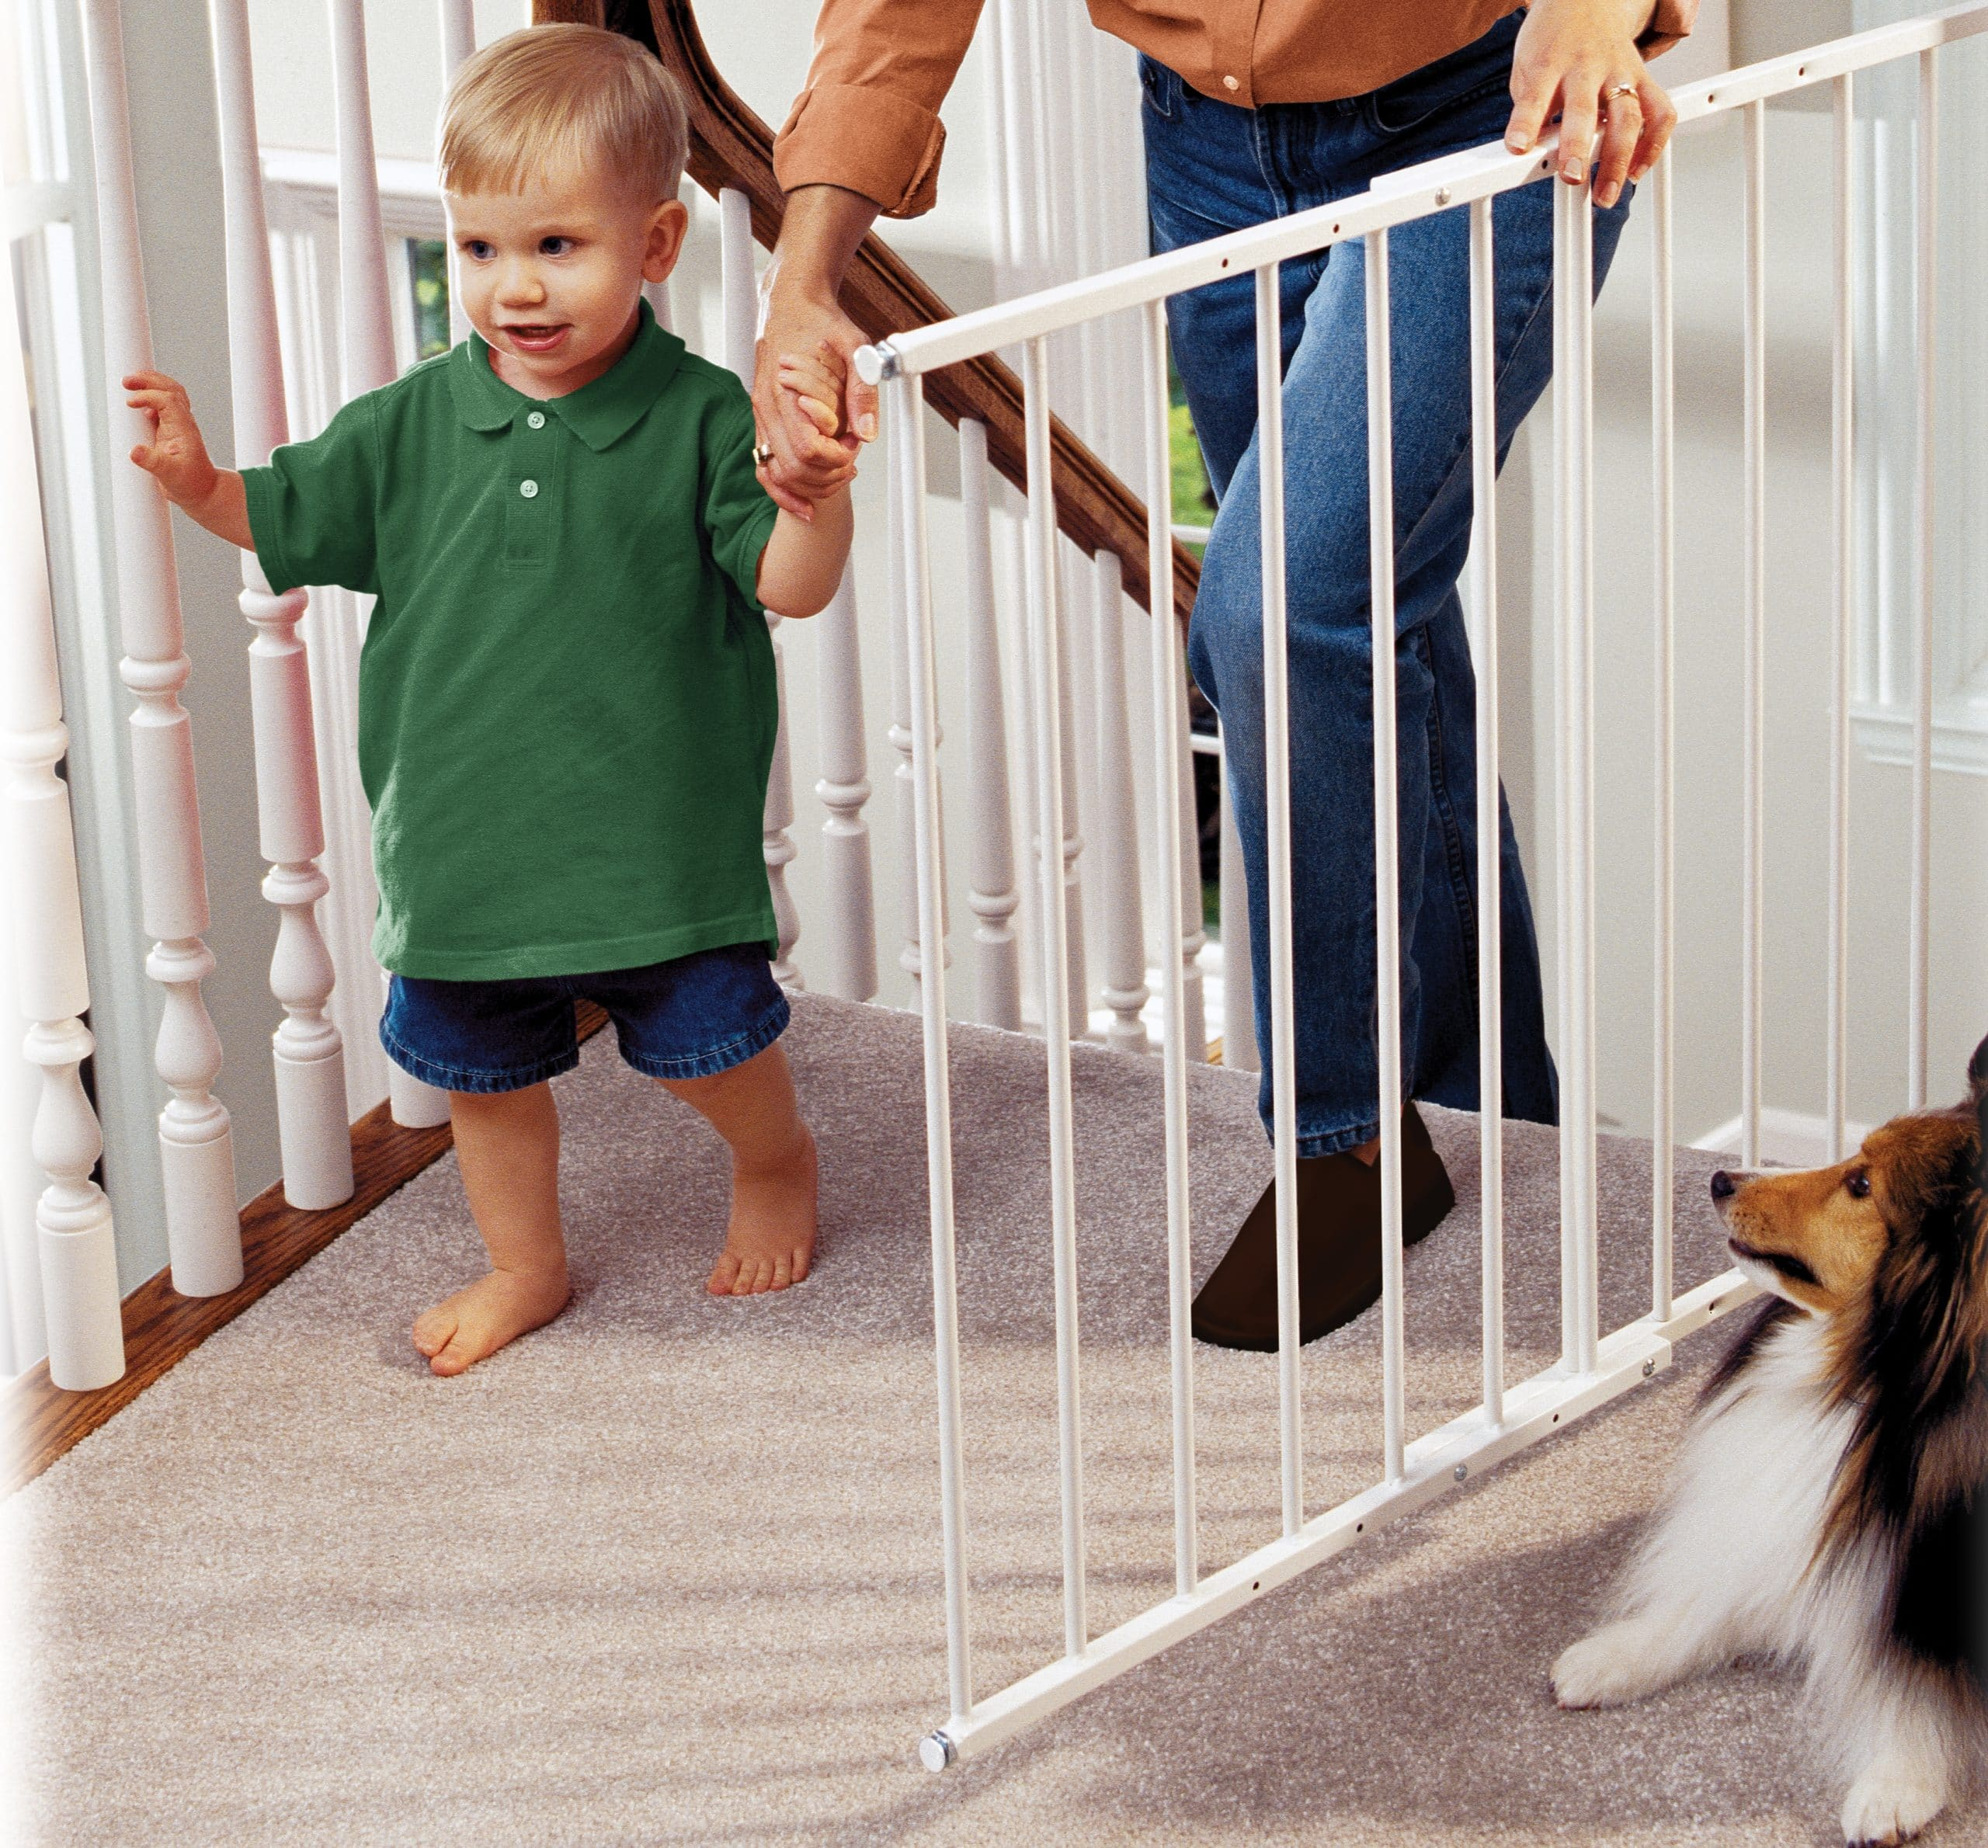 safeway ® top of stair baby safety gate -  top of stair baby safety gate bga